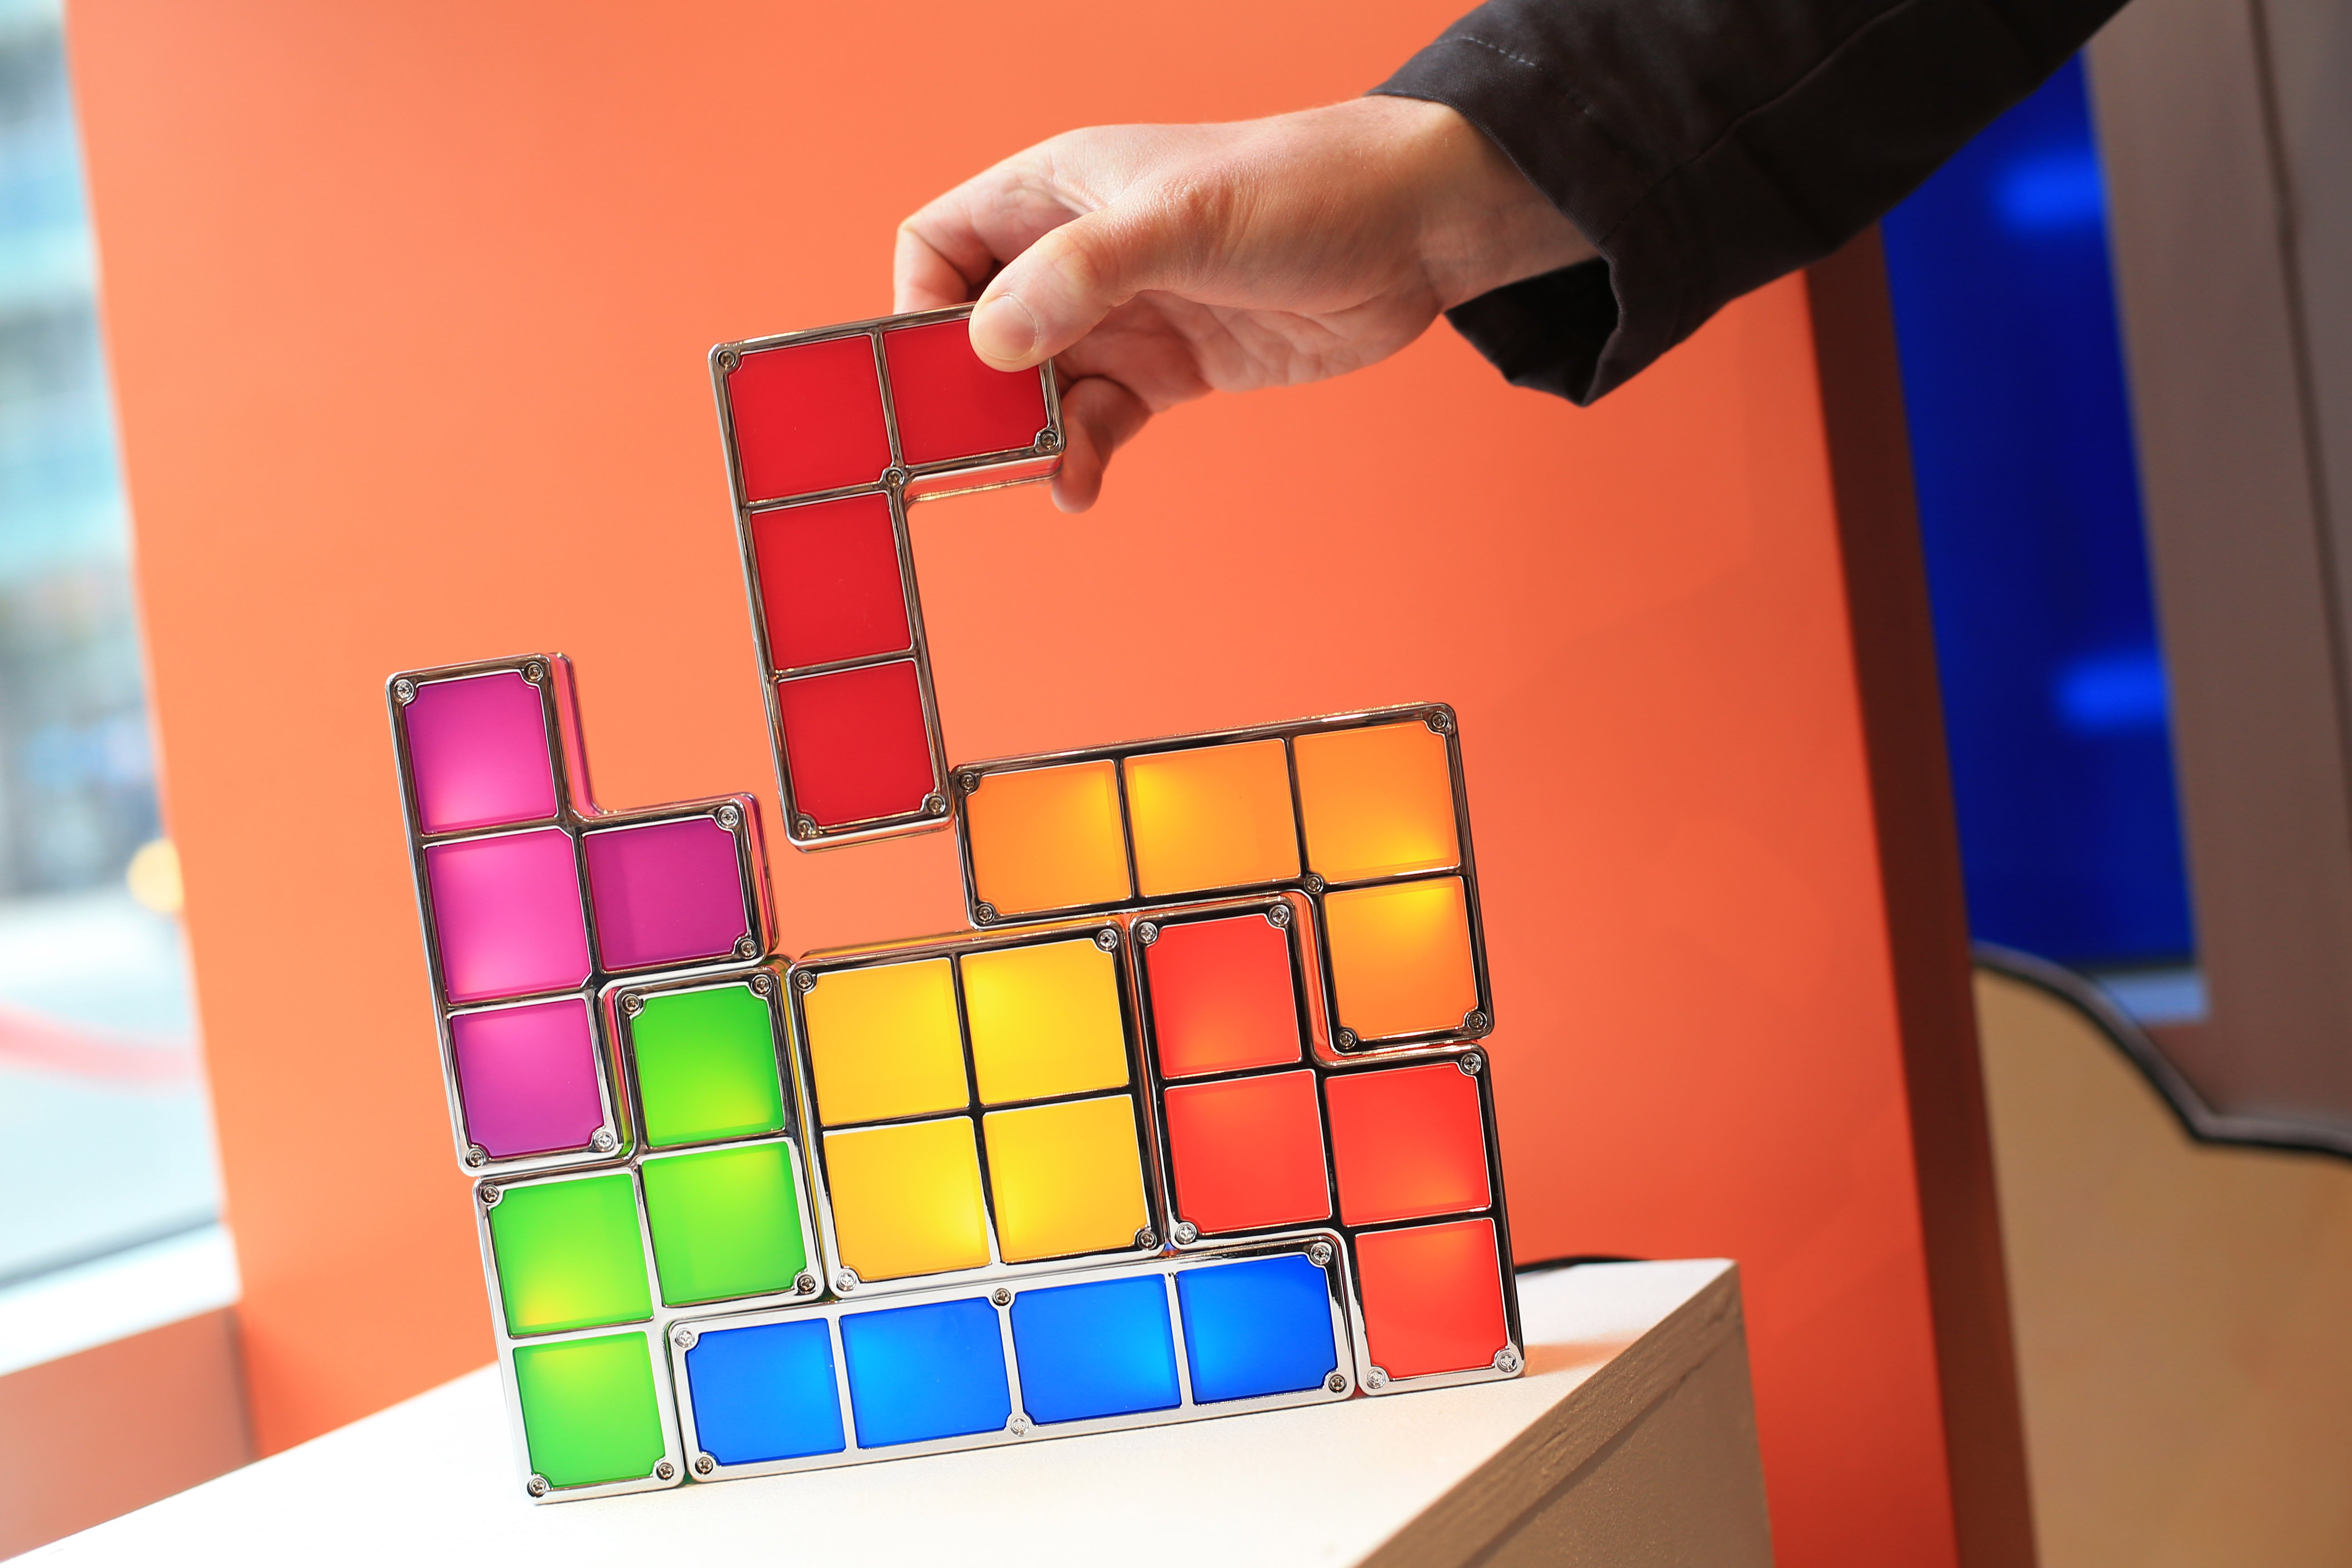 TORONTO, ONTARIO - DECEMBER 8, 2015 -Tetris block light. It is the first anniversary of Page & Panel. Comic-book shop Page & Panel opened a year ago as a pop-up in Toronto Reference Library        (Rene Johnston/Toronto Star via Getty Images)